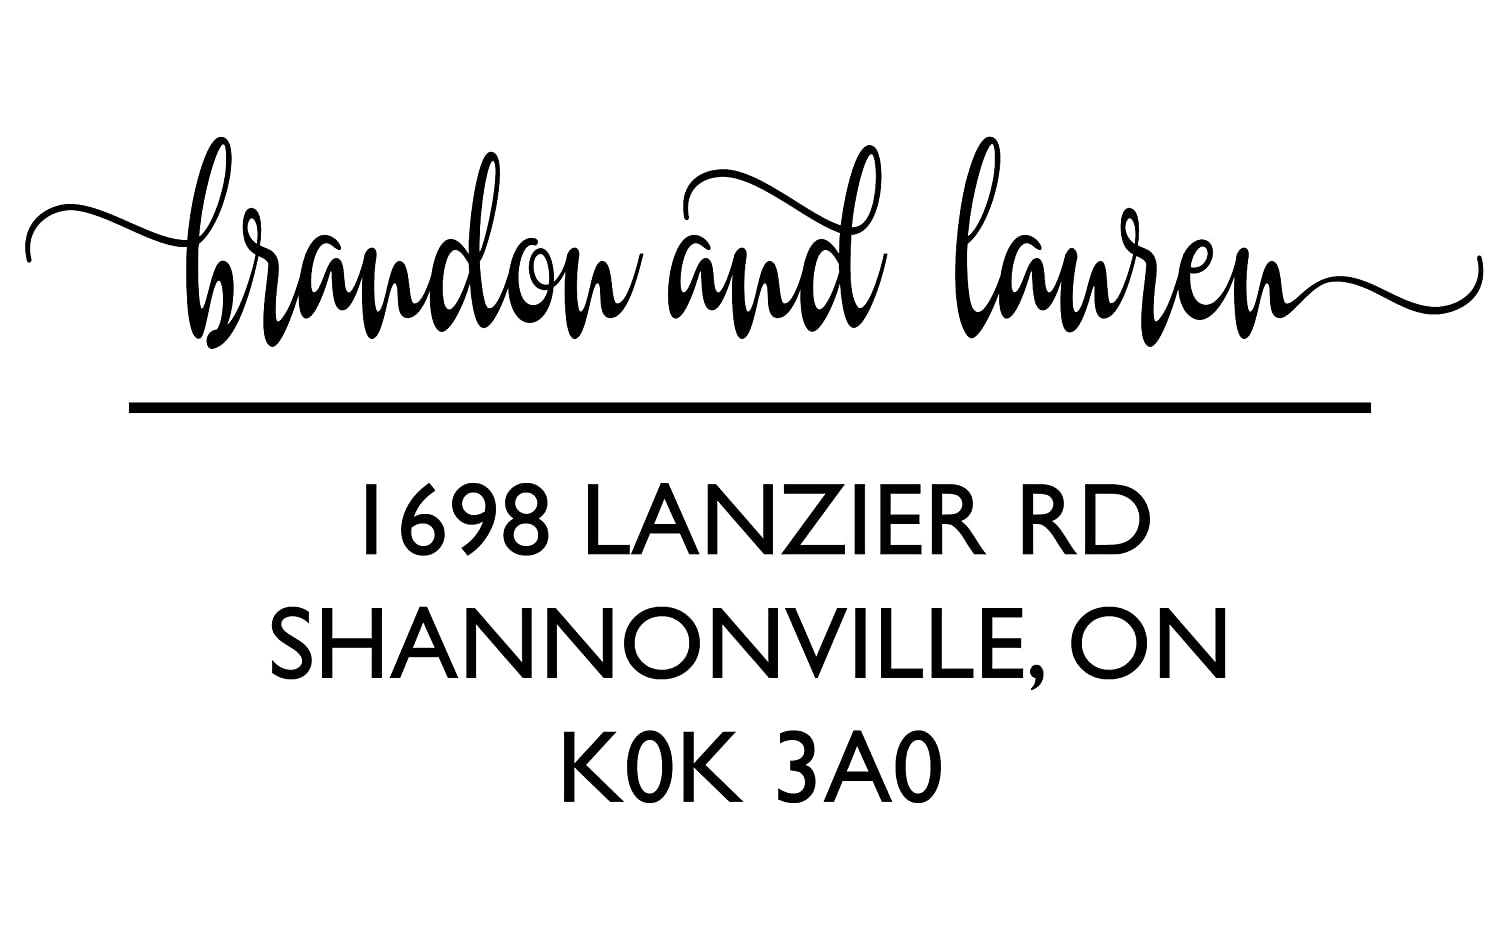 Self inking address stamp, custom address stamp, personalized return address stamp - 7B